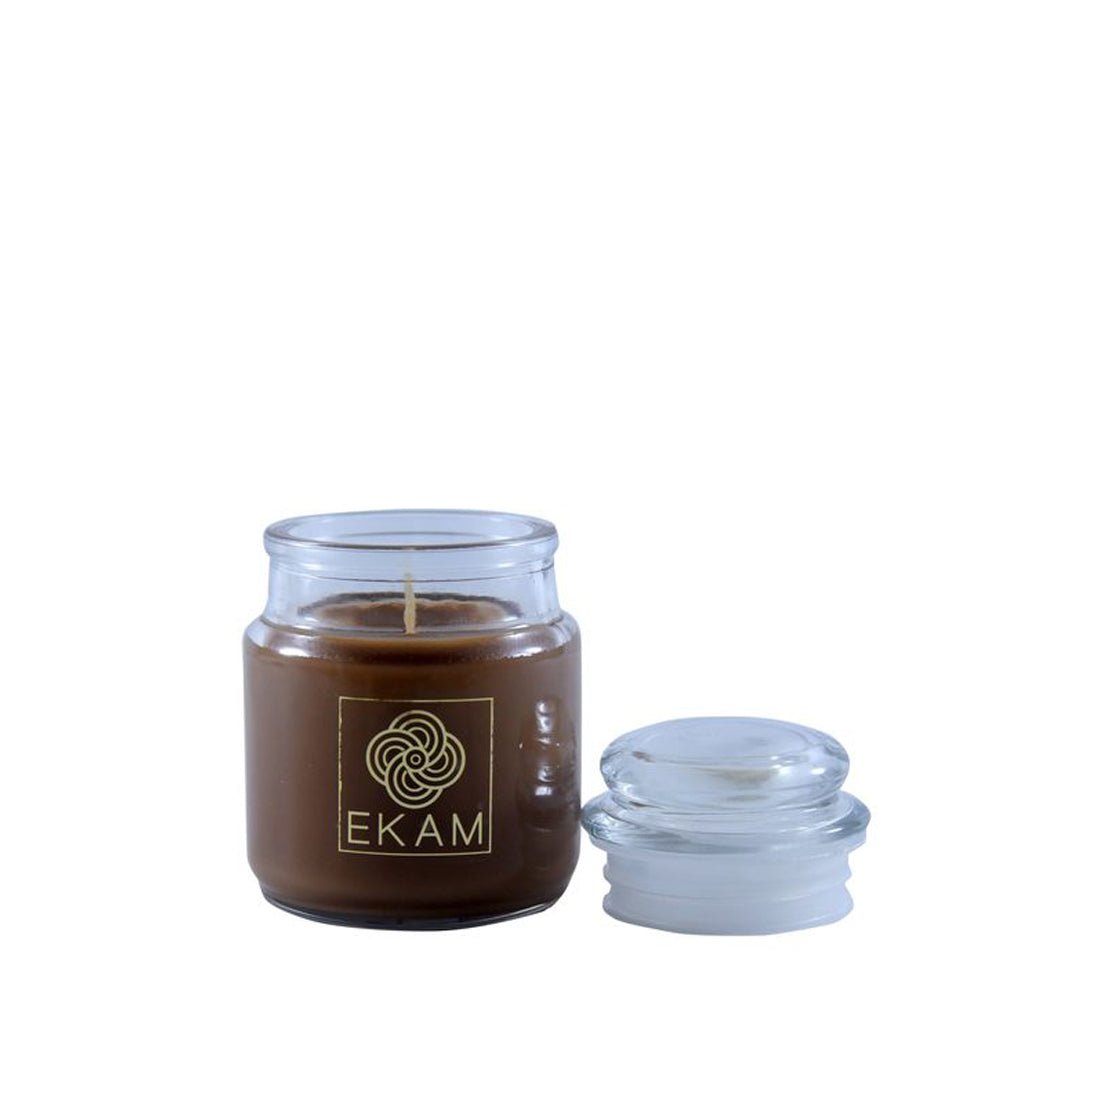 Ekam Jar Candles Online